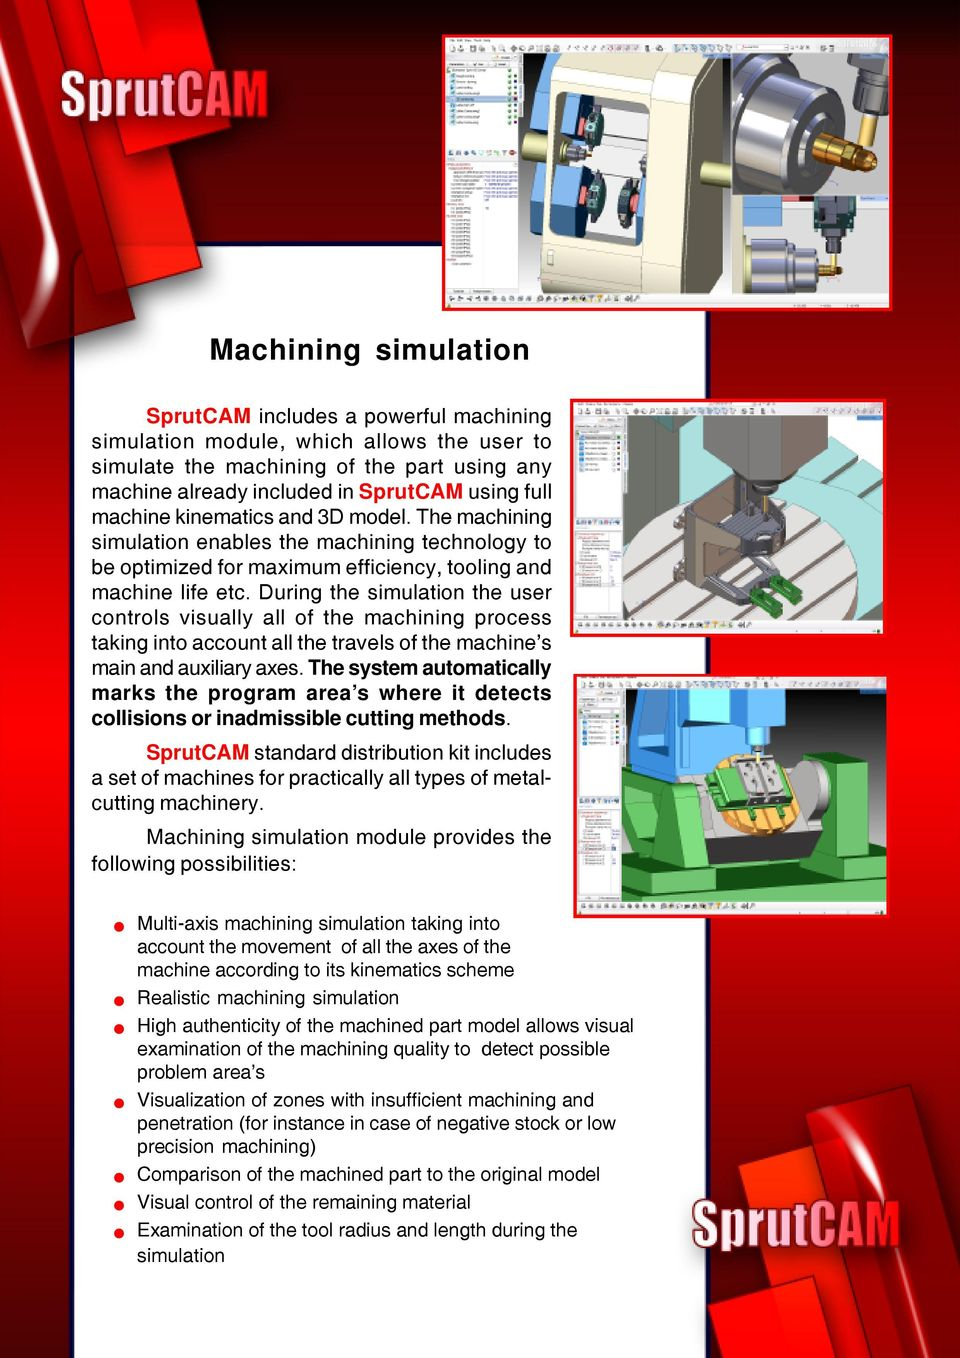 During the simulation the user controls visually all of the machining process taking into account all the travels of the machine s main and auxiliary axes.